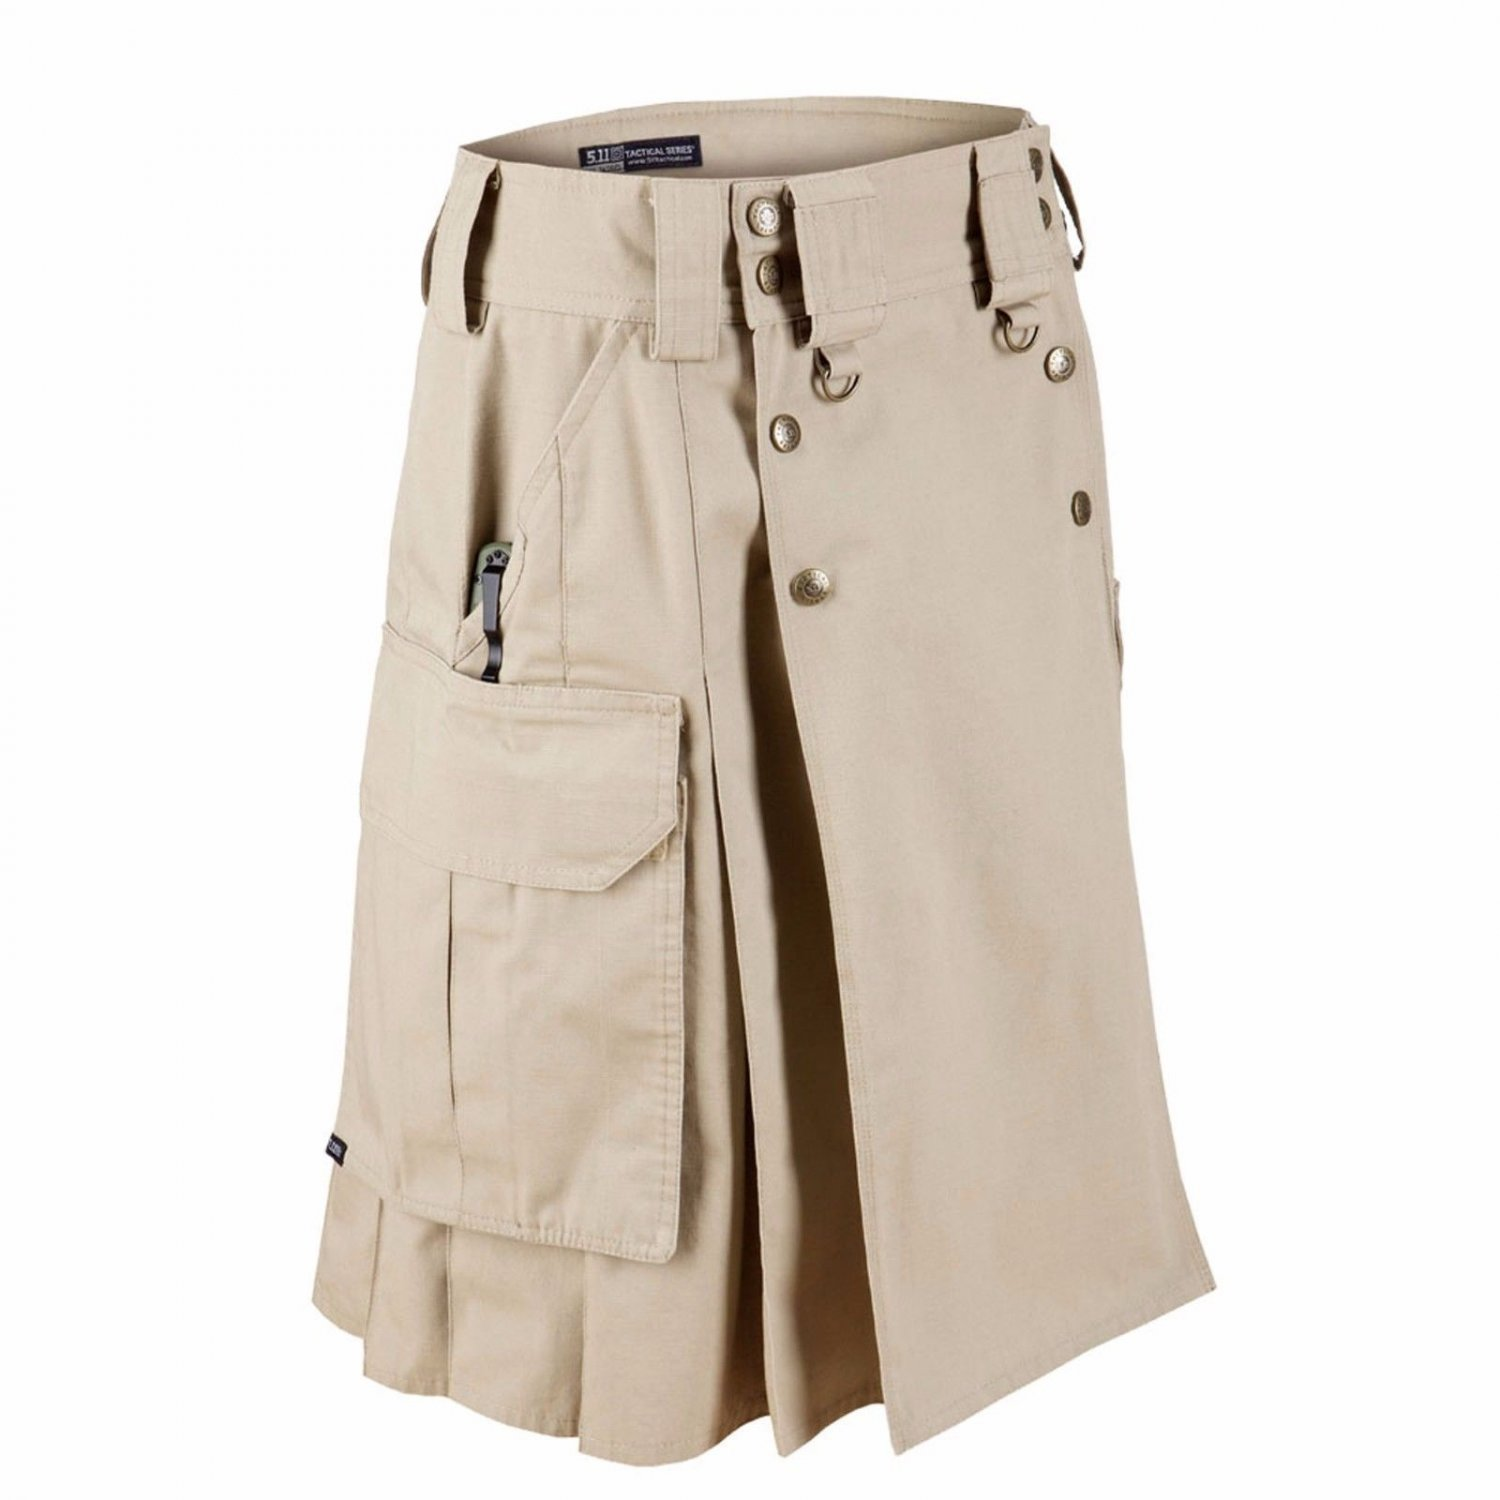 New Tactical Men,s Duty Kilt Cargo Uniform Battle Khaki Utility kilt Size 52